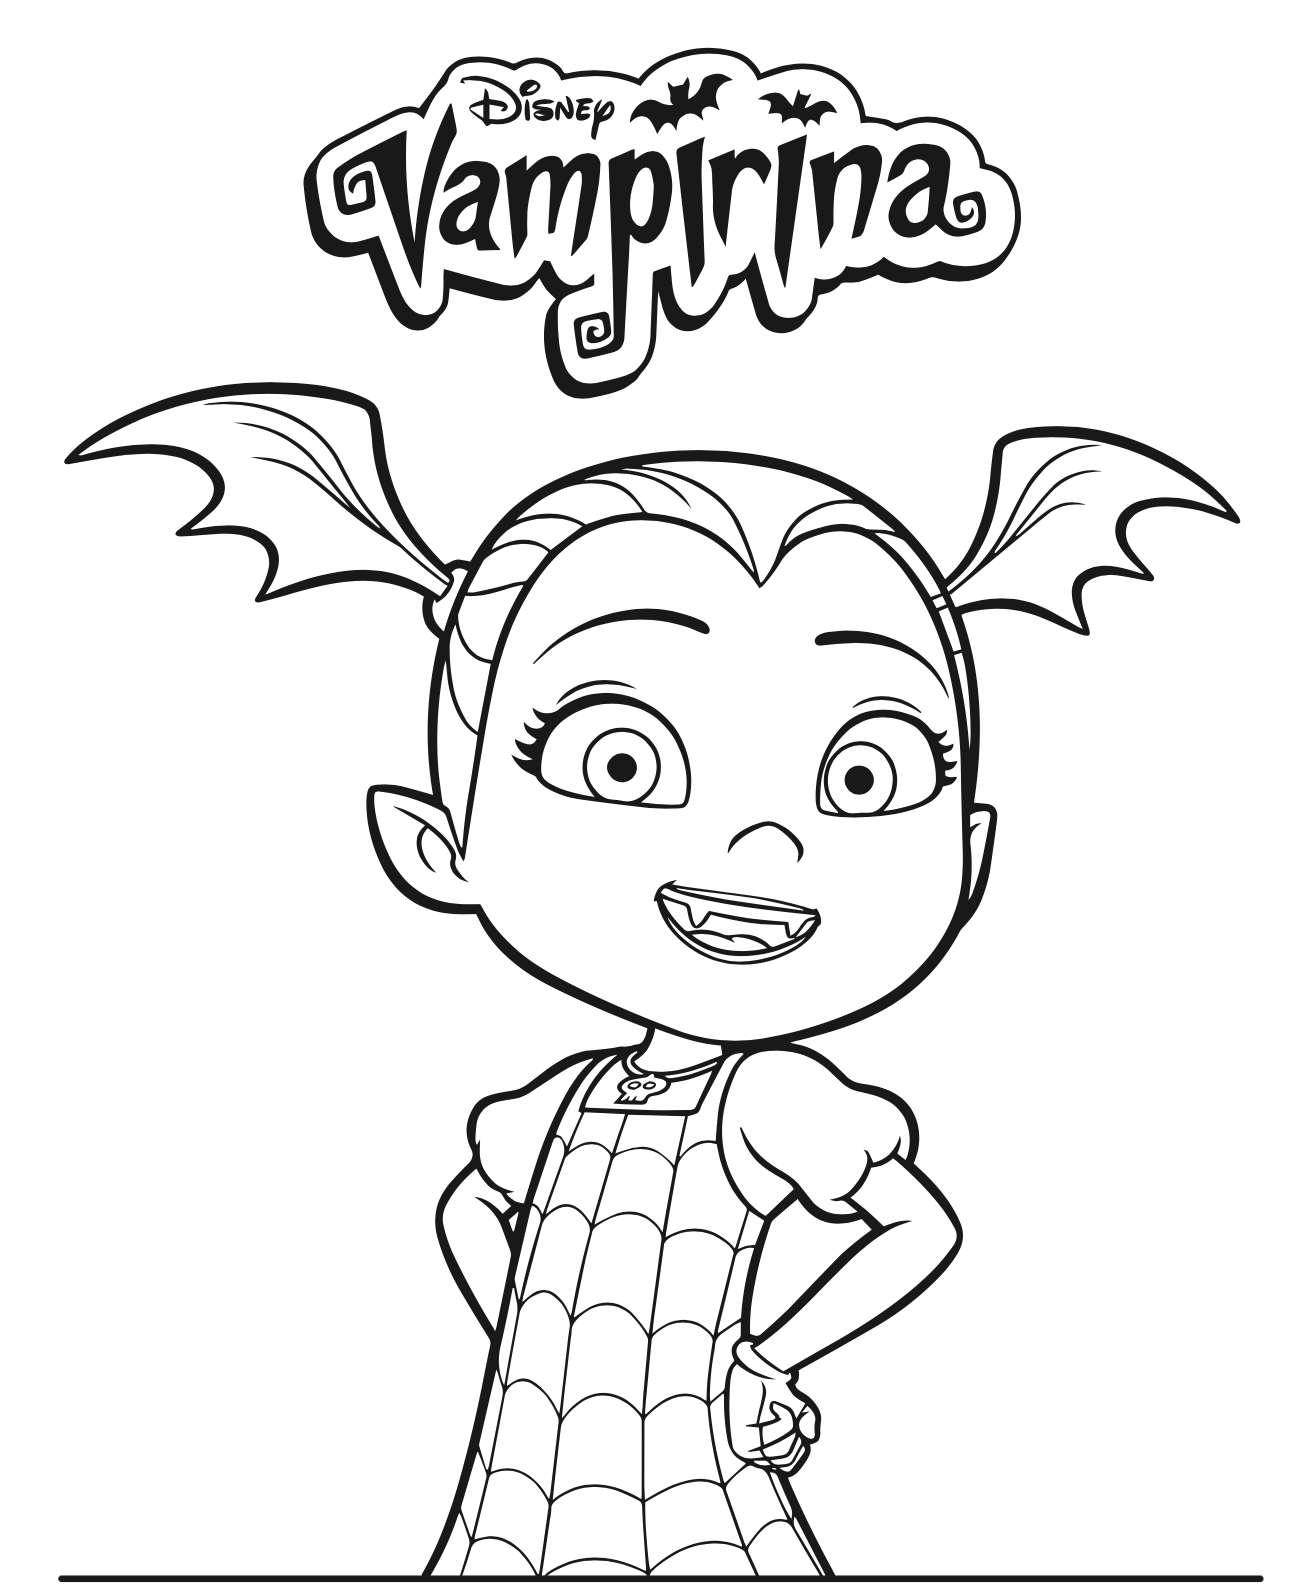 Download Free Printable Disney Junior Vampirina Coloring Pages Enter The Giveaway To Win A Disney Coloring Pages Halloween Coloring Halloween Coloring Pages